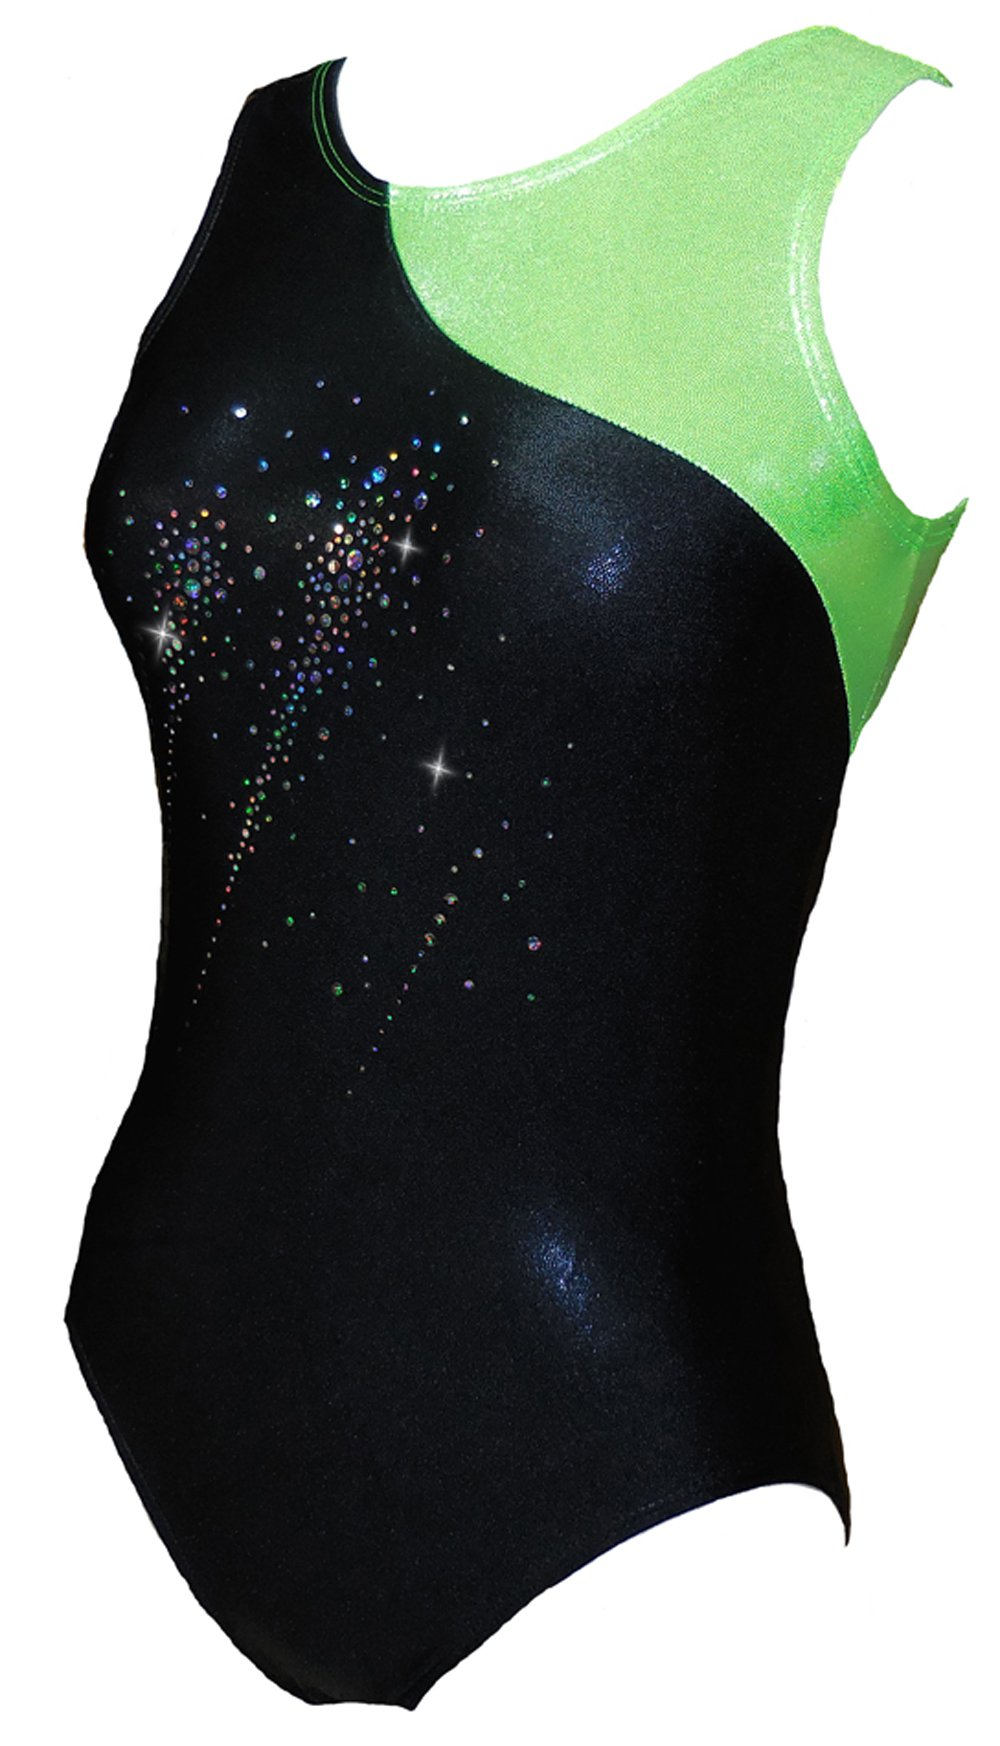 Look-It Activewear Falling Stars Leotard for girls and women (Adult Medium (size 6-8)) by Look-It Activewear